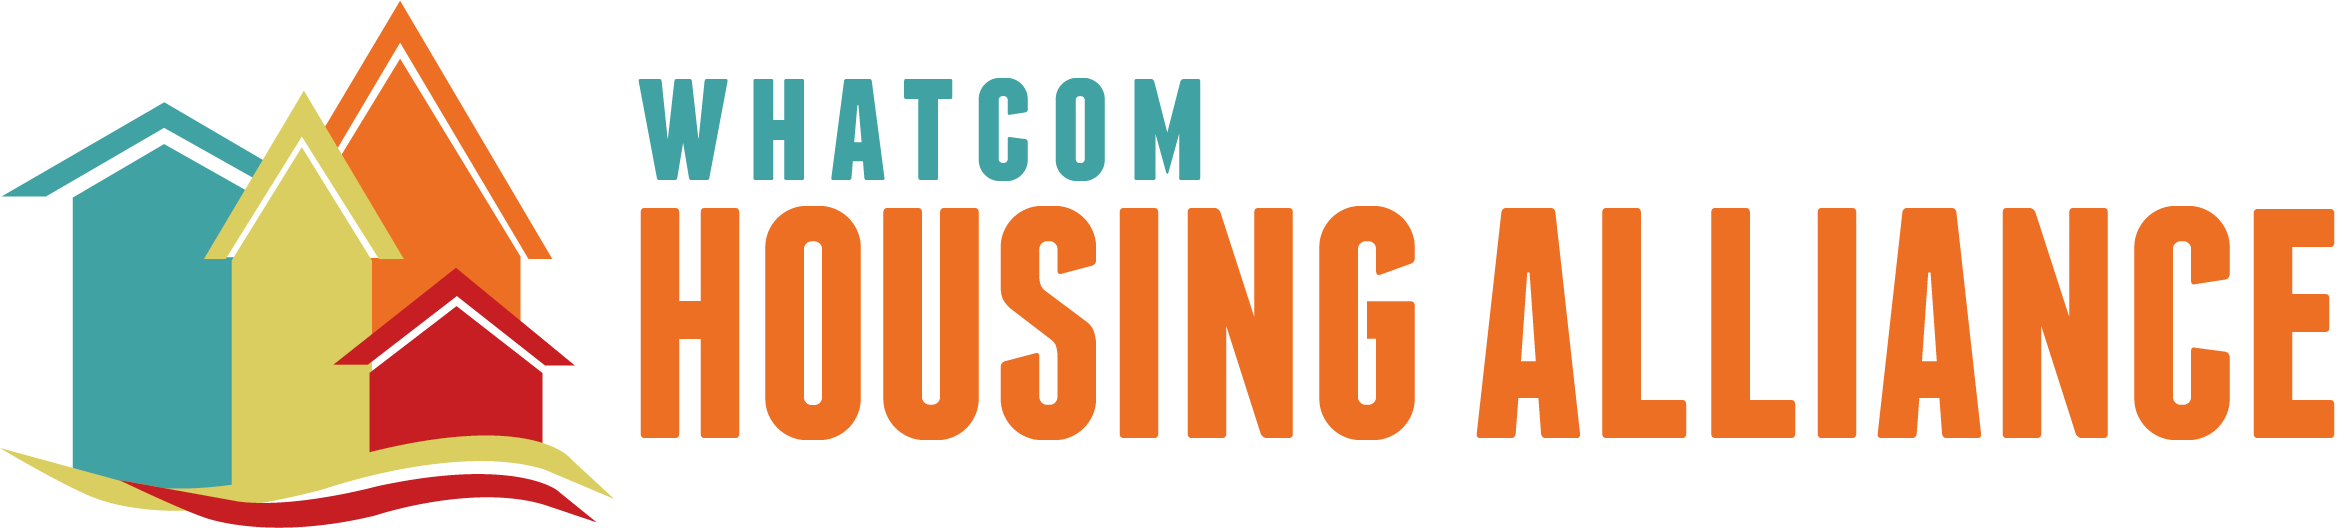 Whatcom Housing Alliance